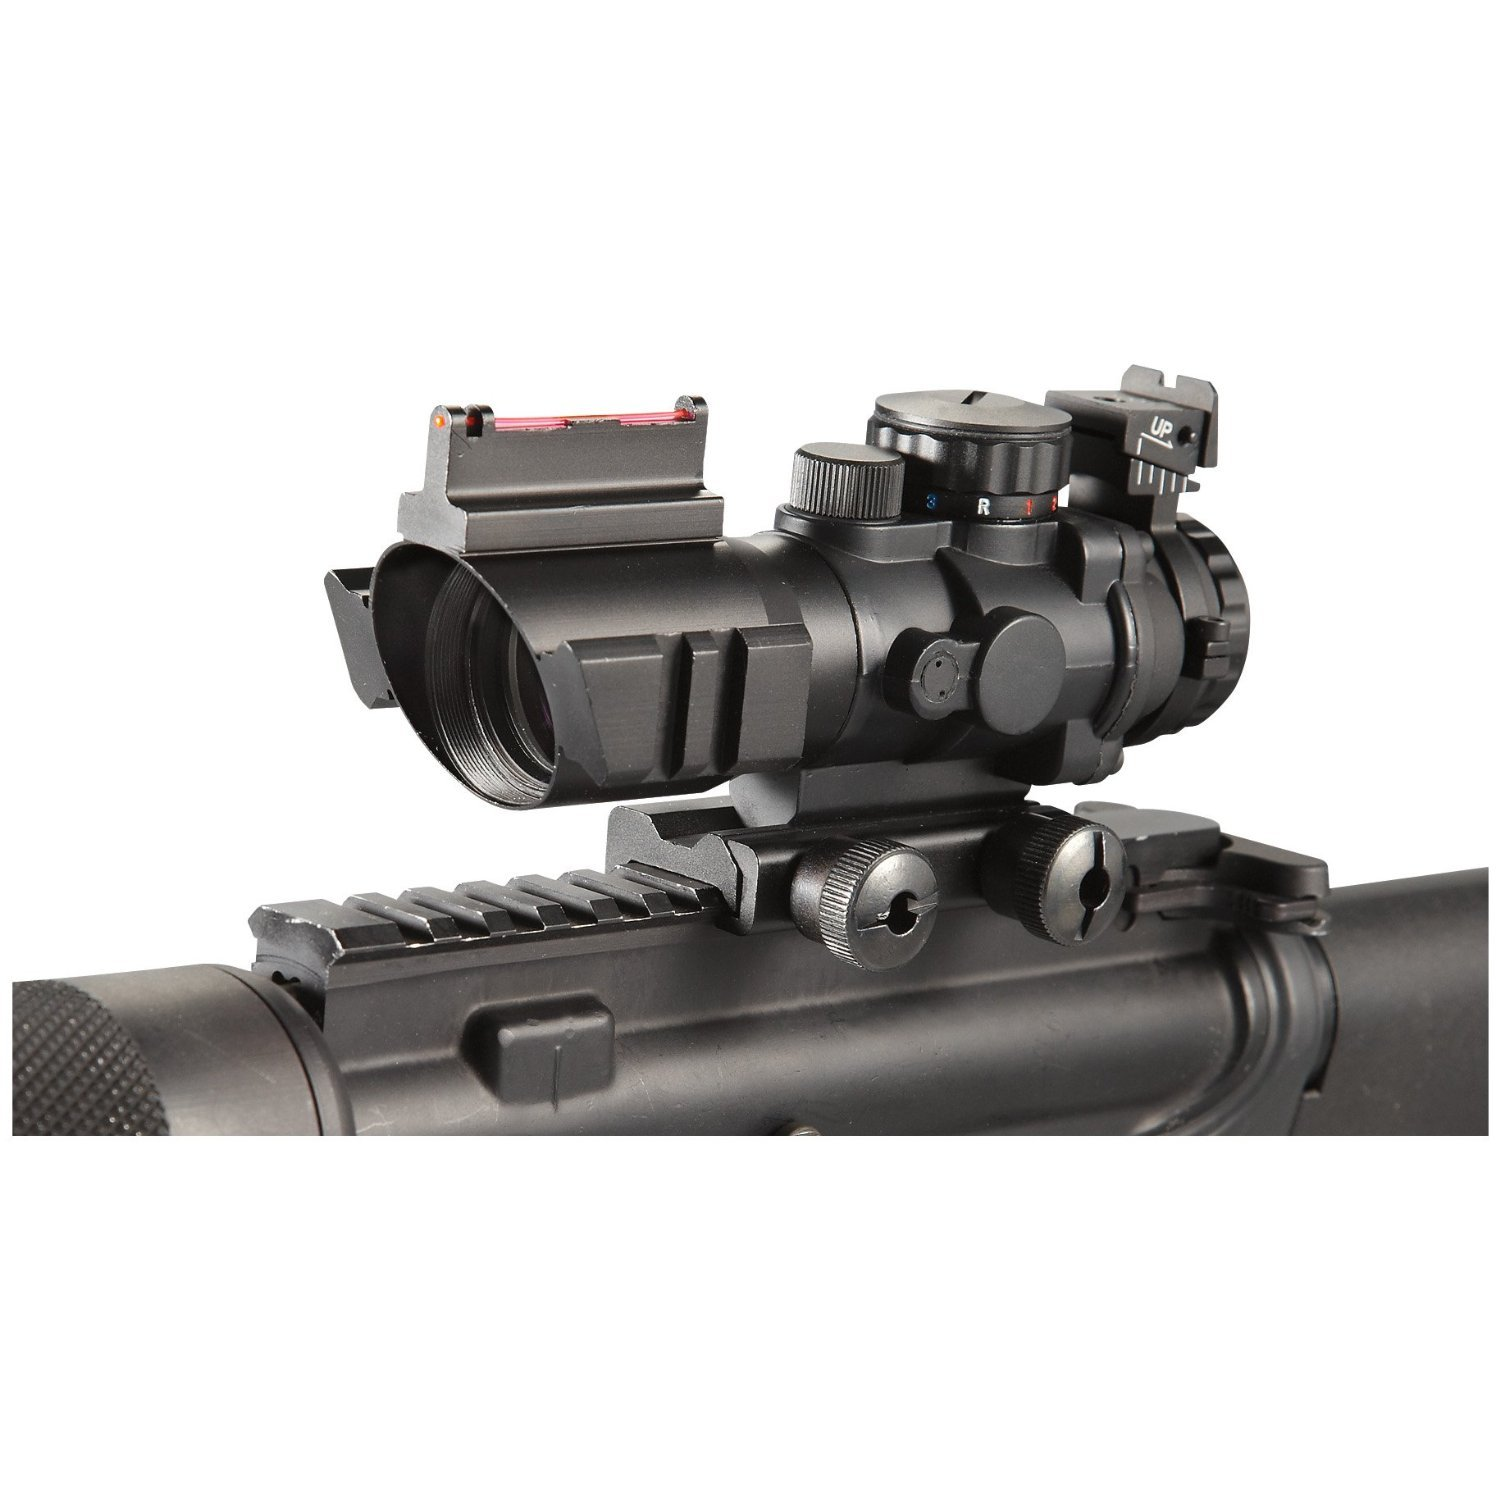 Ade Advanced Optics 4×32 Fixed Power Green blue red Illuminated Reticle Compact Rifle Scope with Fiber Optic Tactical Sight and Weaver Slots